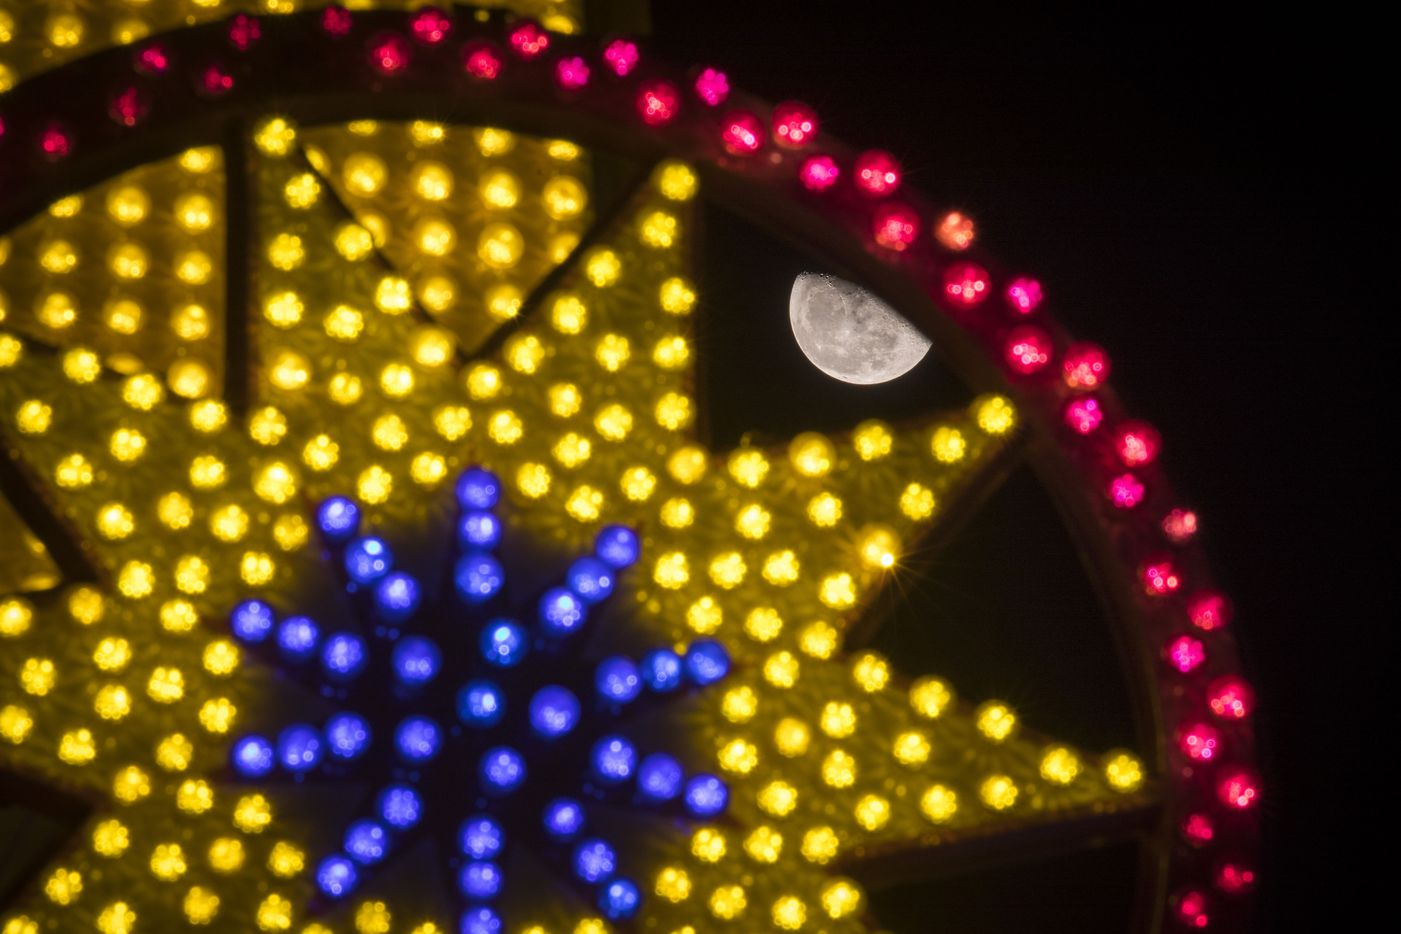 The moon rises behind rides on the Midway at the State Fair of Texas in the early morning hours of Oct. 11.